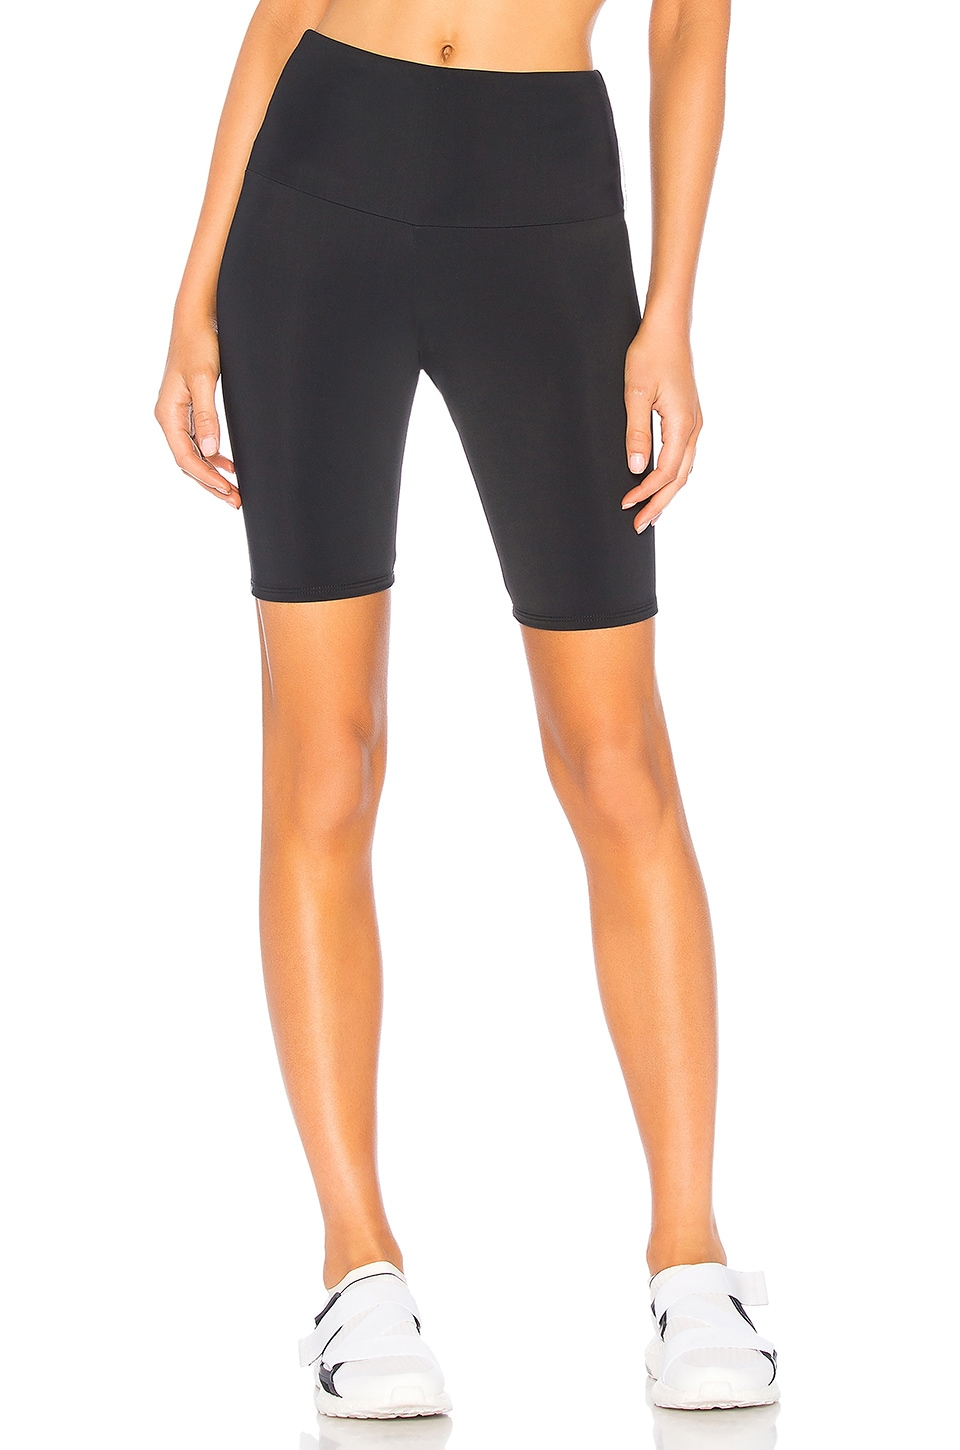 High Rise Bike Short             onzie                                                                                                       CA$ 72.96 11